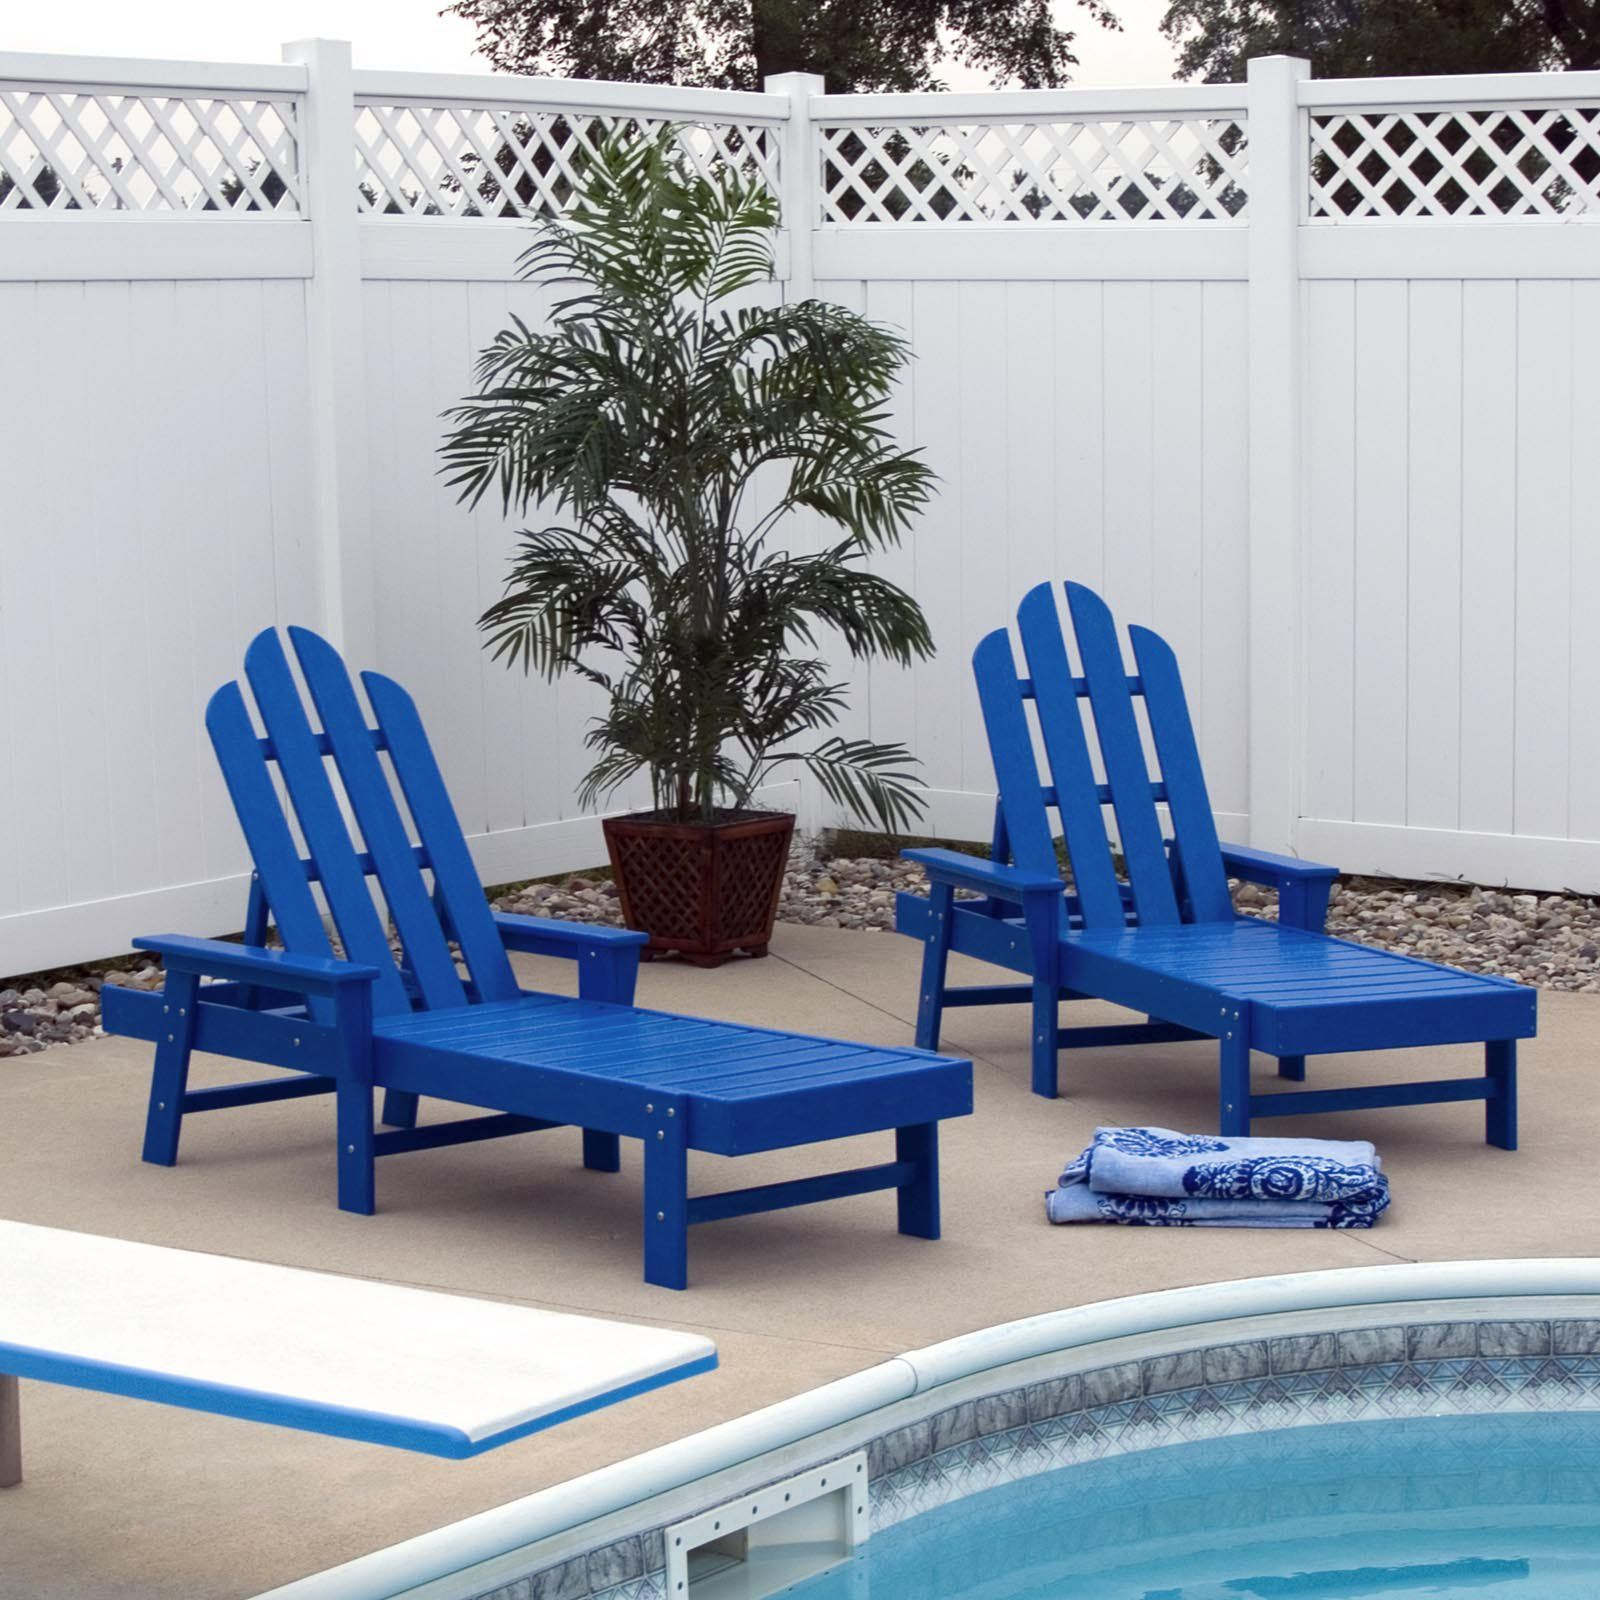 Surprising Outdoor Polywooda Long Island Recycled Plastic Chaise Short Links Chair Design For Home Short Linksinfo